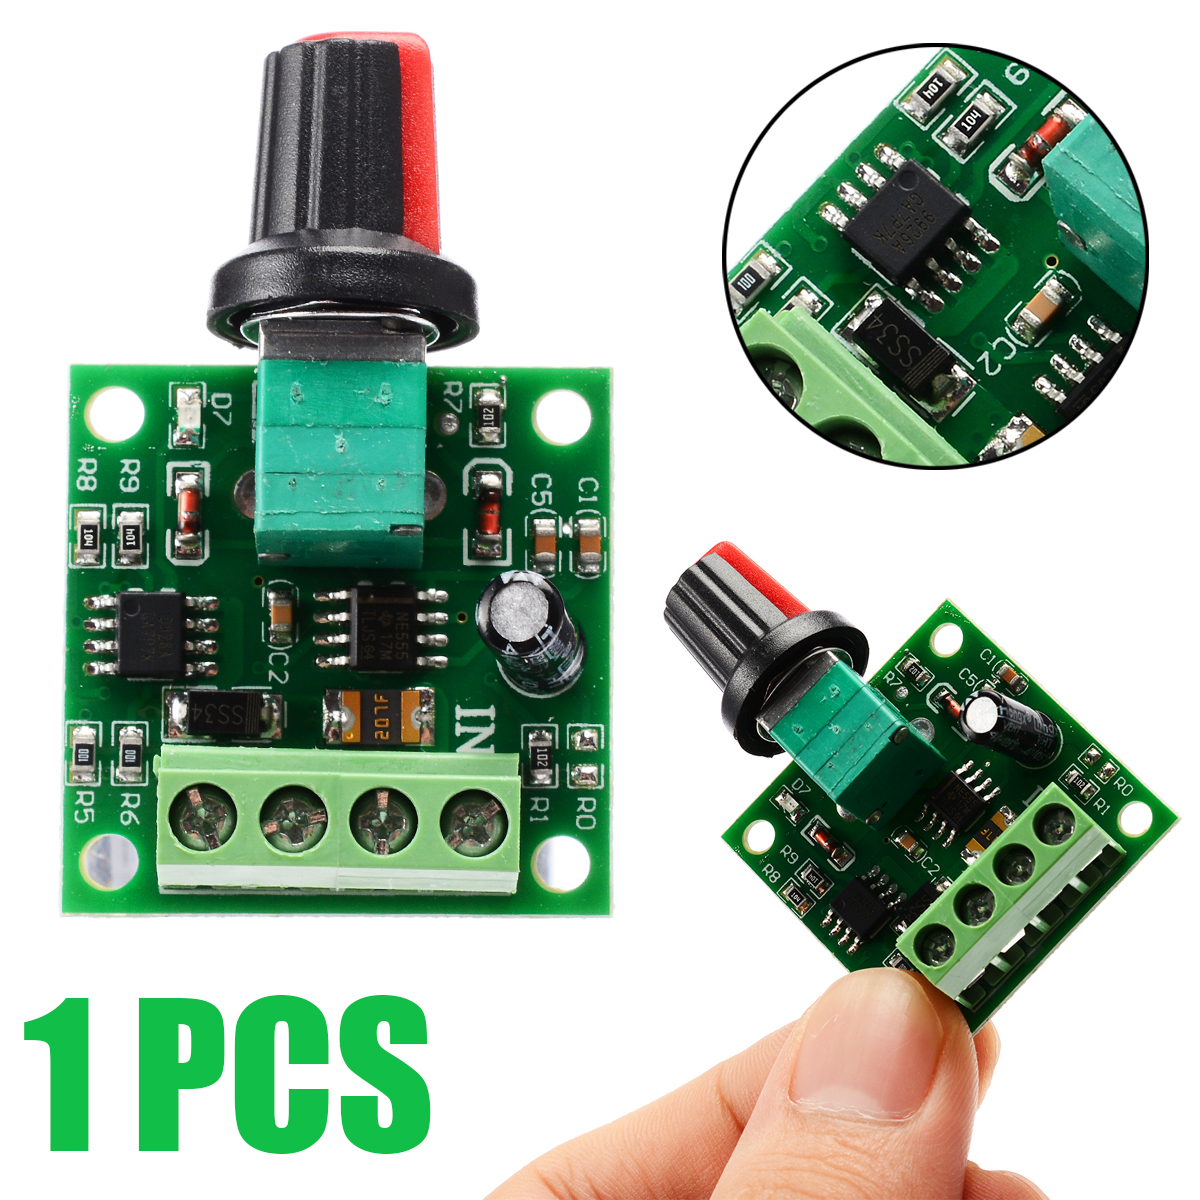 Voltage DC 1.8V 3V 5V 6V 12V 2A Motor Speed Controller Governor PWM Adjustable Switch Motor Controller